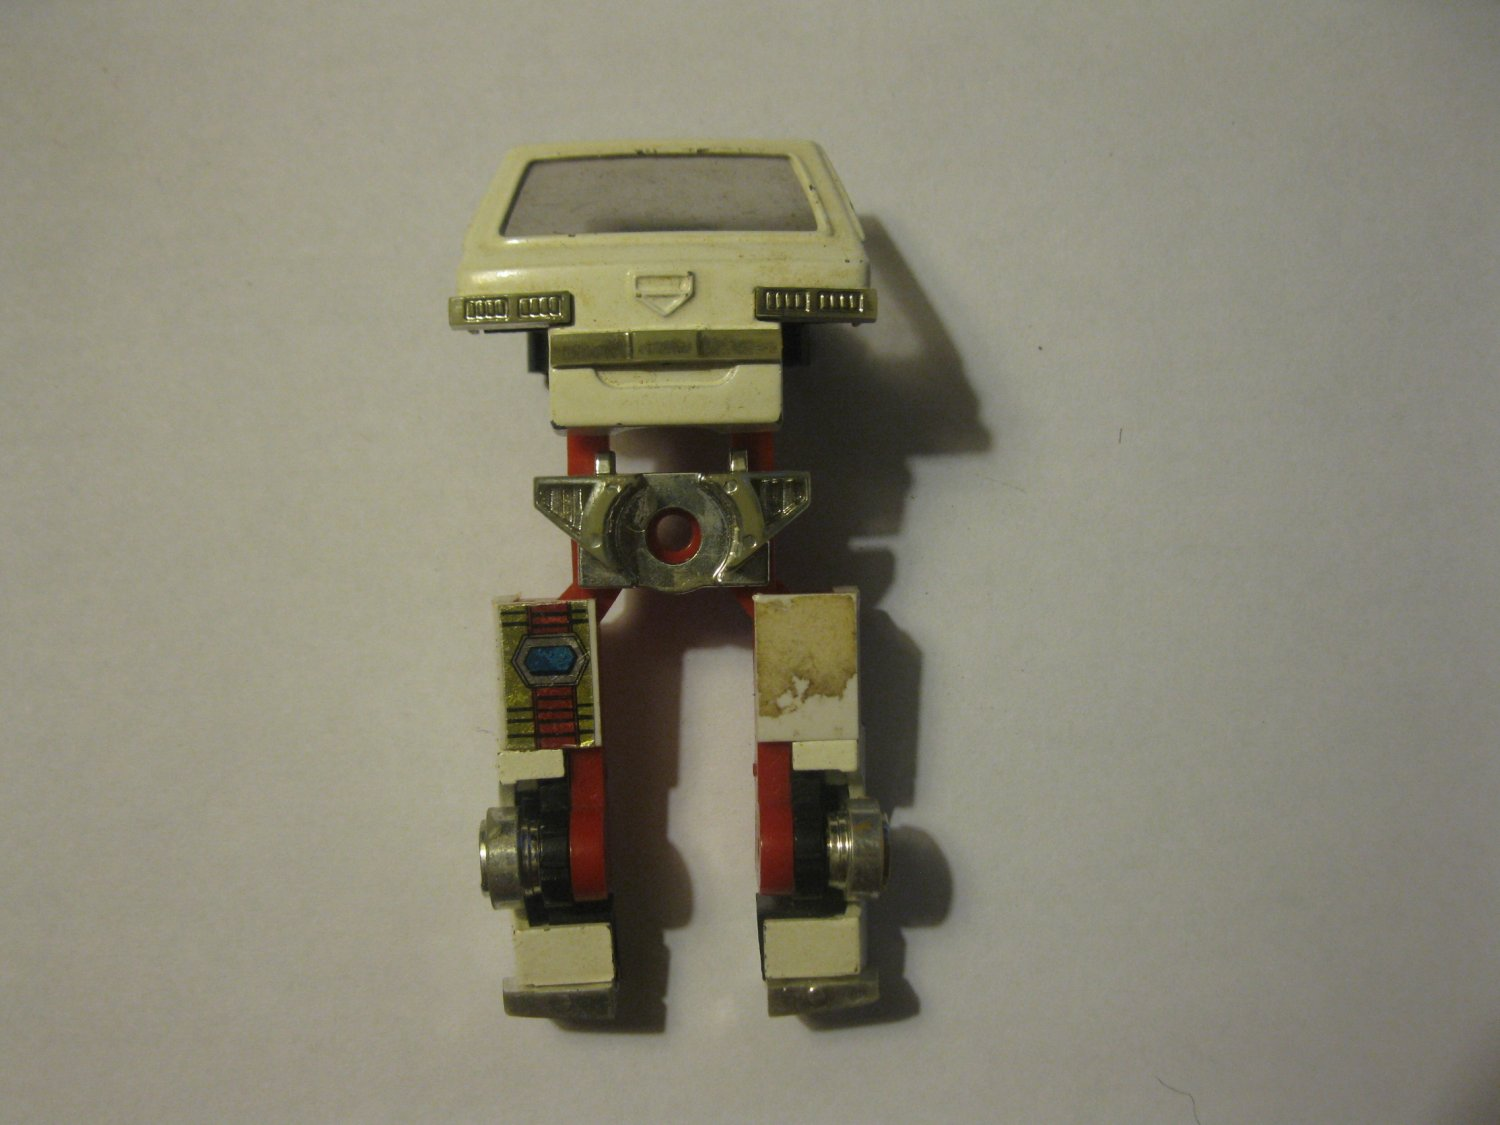 G1 Transformers Action figure part: 1984 Ratchet - Main Body Section 50% complete